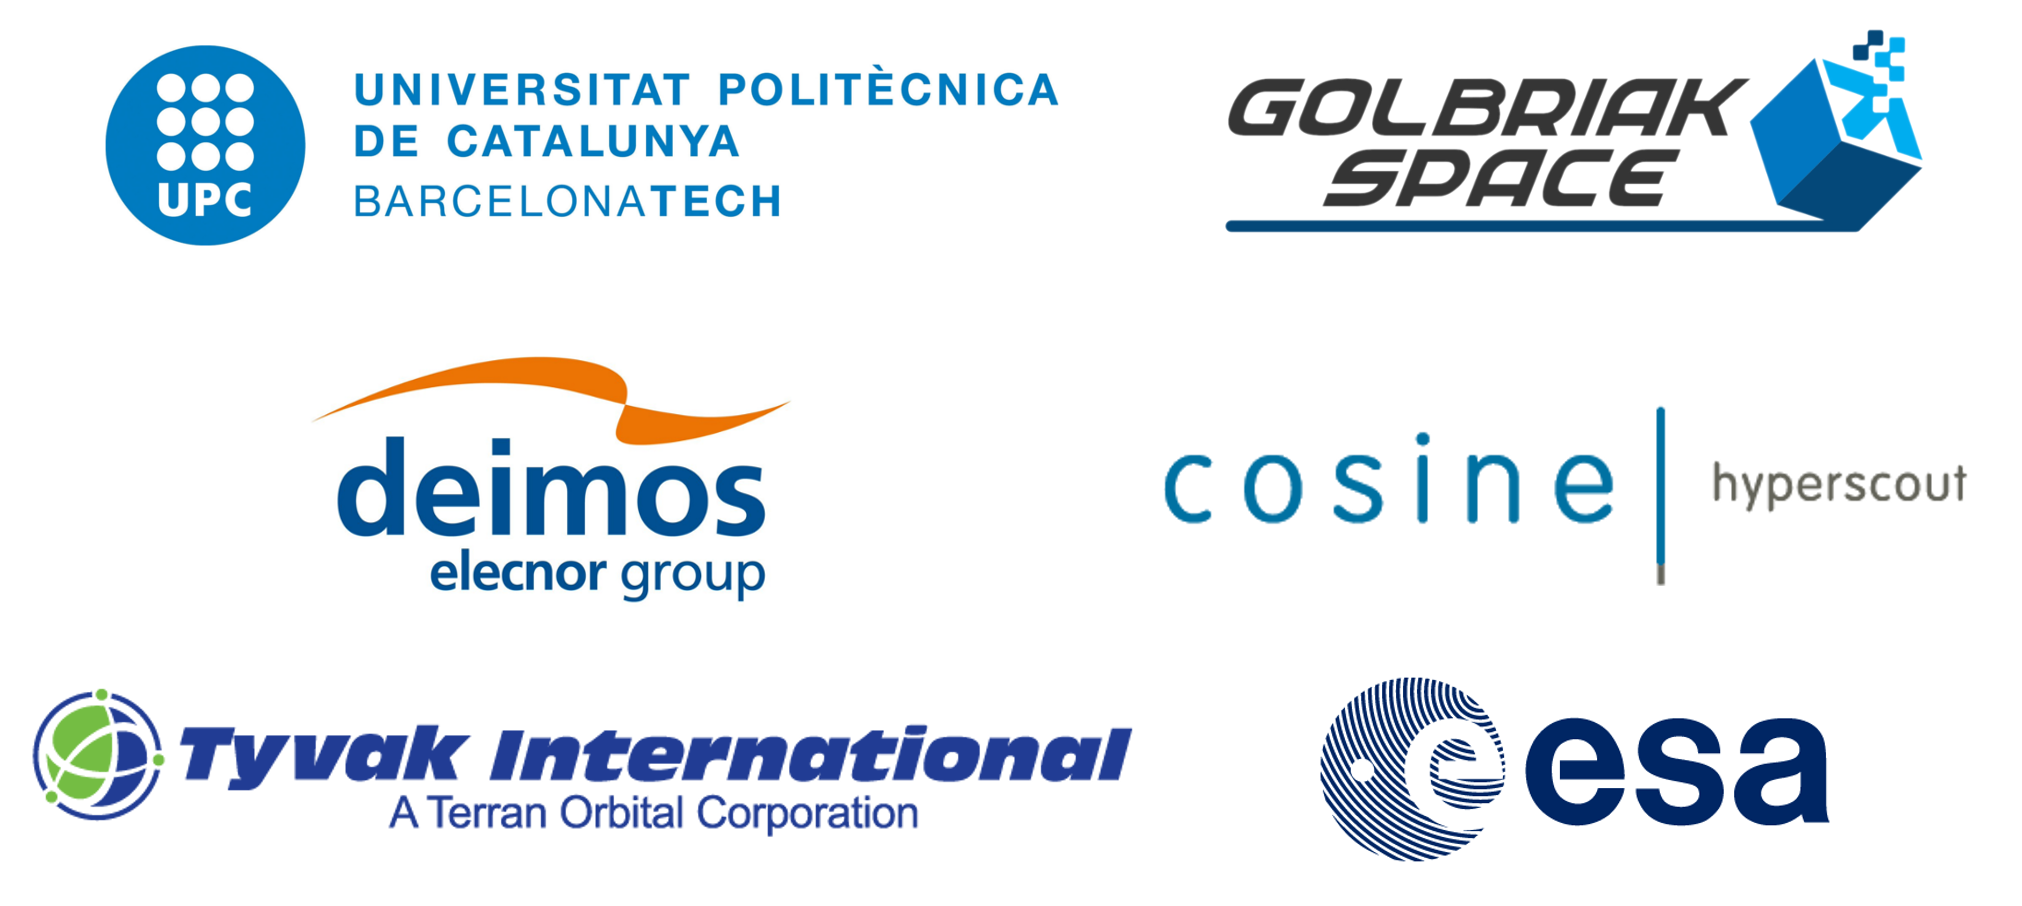 Sponsors and entities that have collaborated in the FSSCat mission